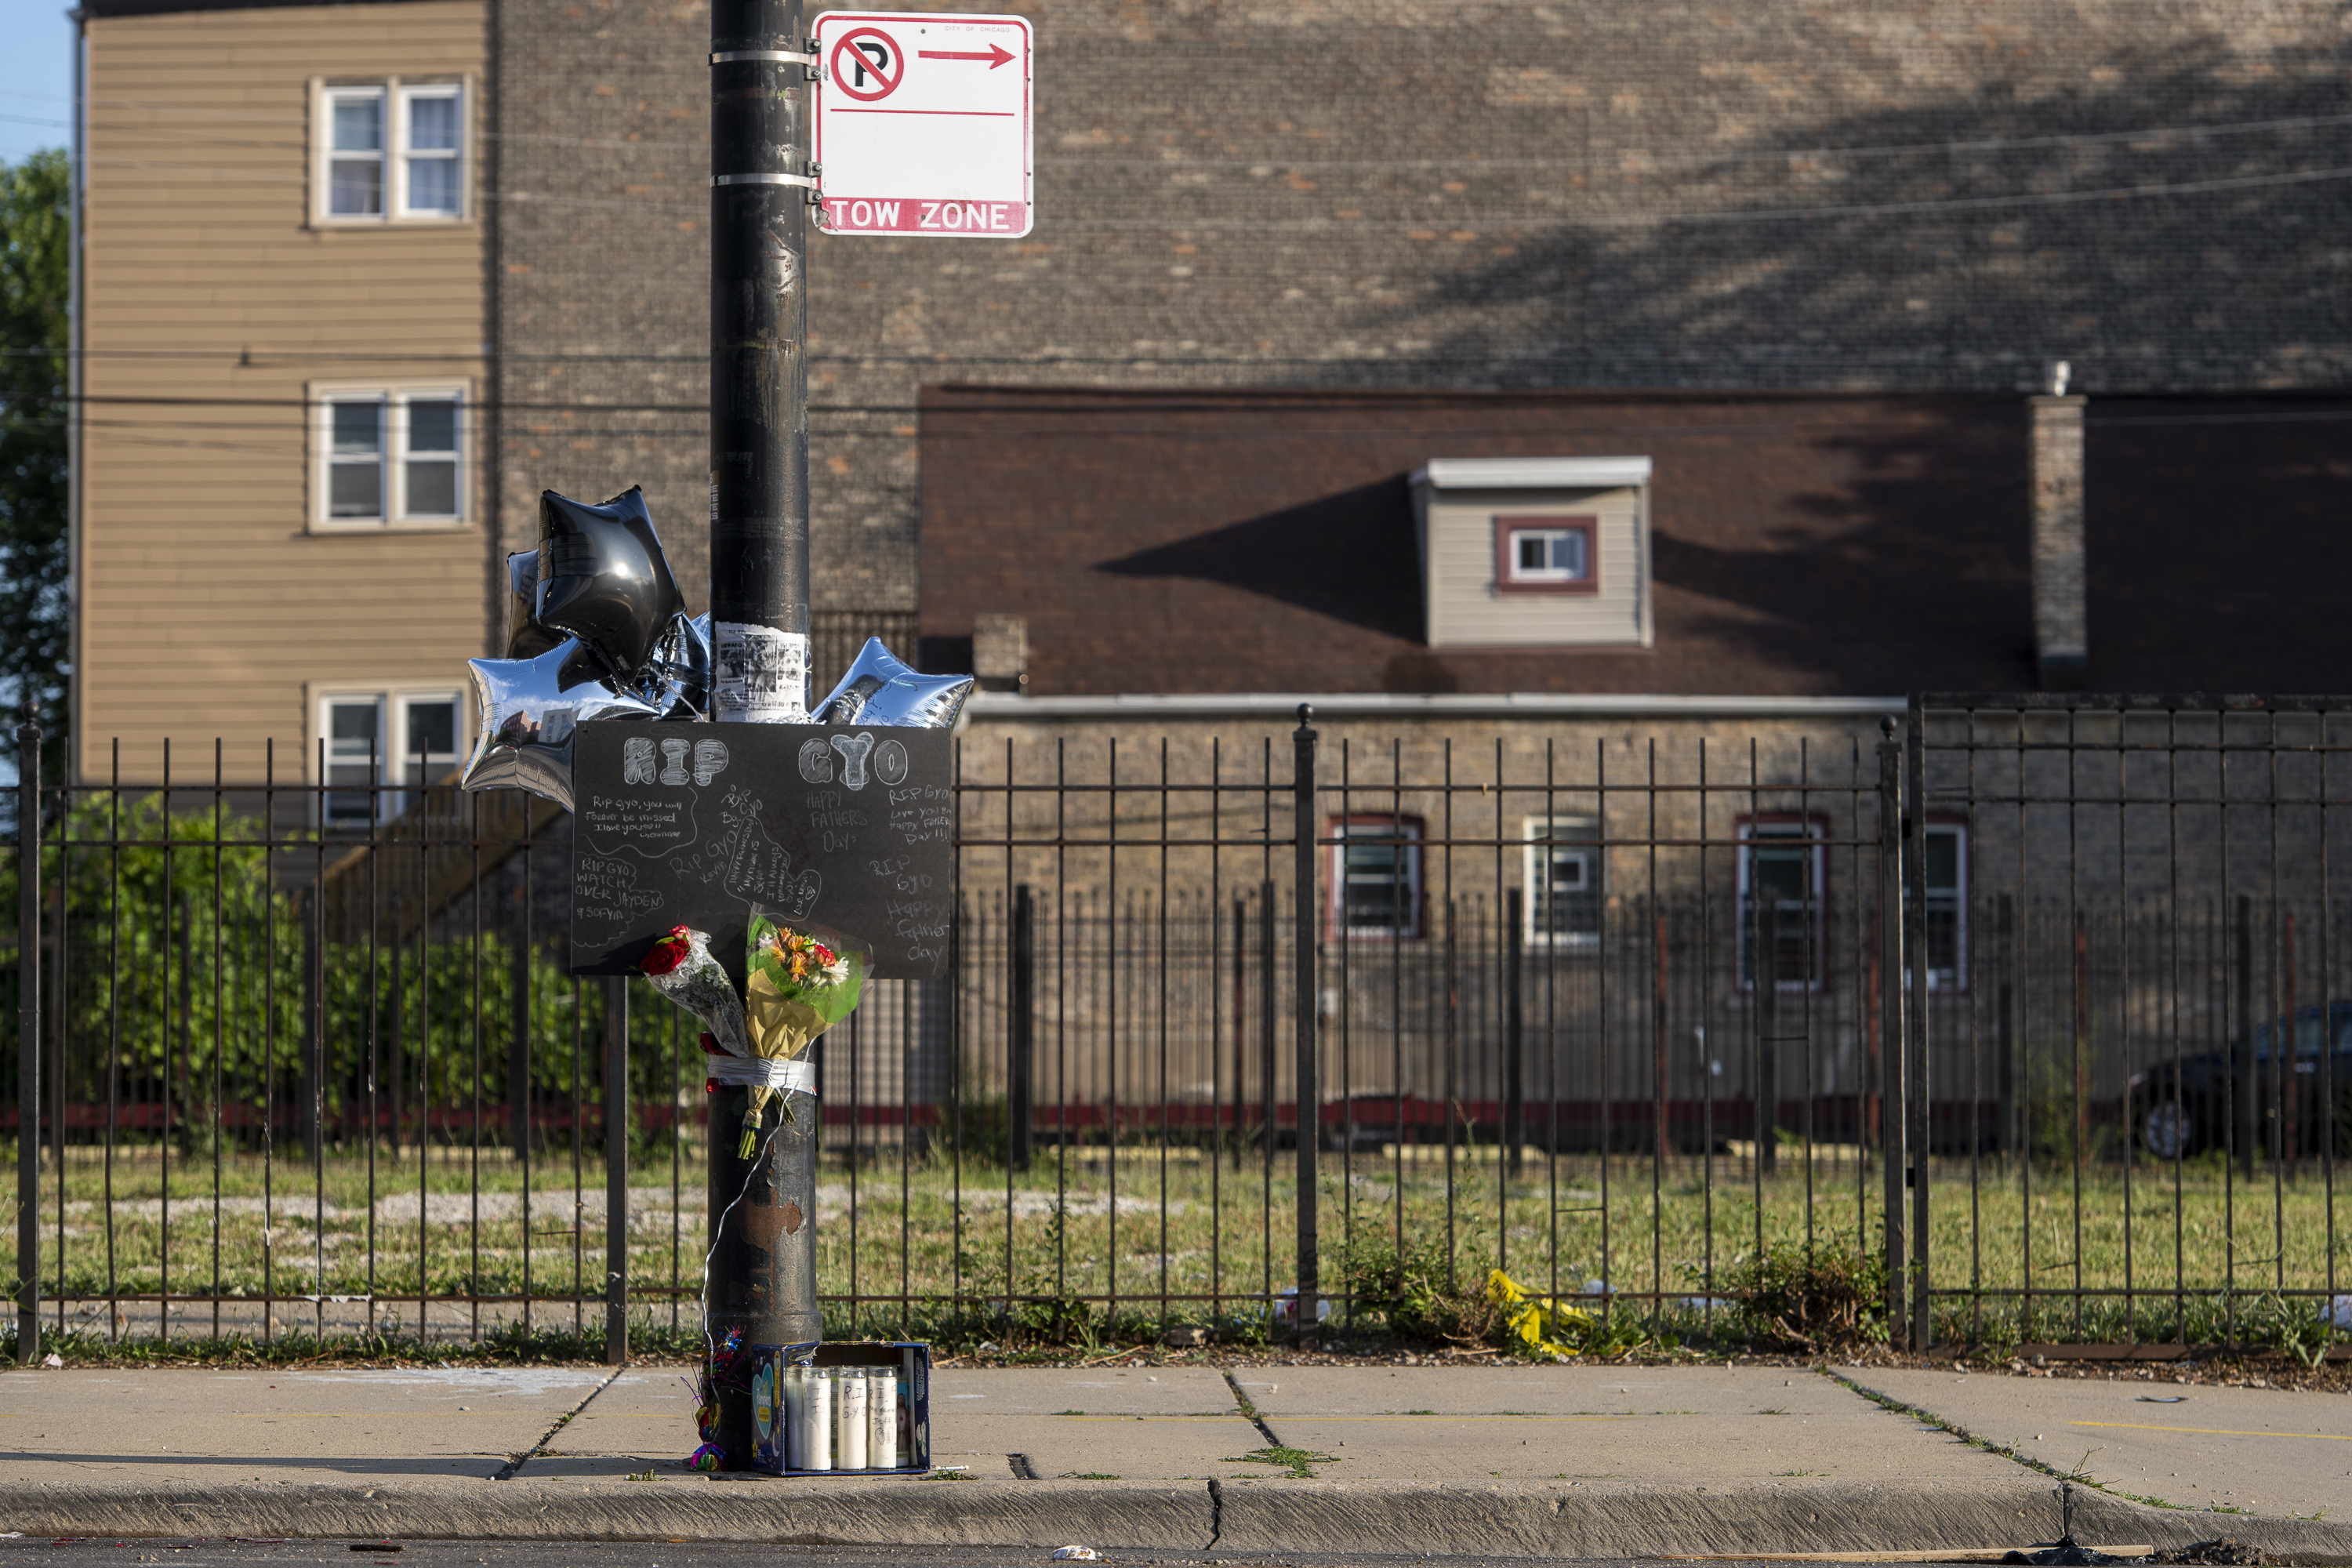 A memorial for Gyovanny Arzuaga, who was shot and killed in the 3200 block of West Division St. in Humboldt Park, is seen Sunday. Arzuaga was killed on Saturday while celebrating Puerto Rican Day, Sunday, June 20, 2021. Gyovanny was traveling with Yasmin Perez, who was critically wounded in the same shooting.